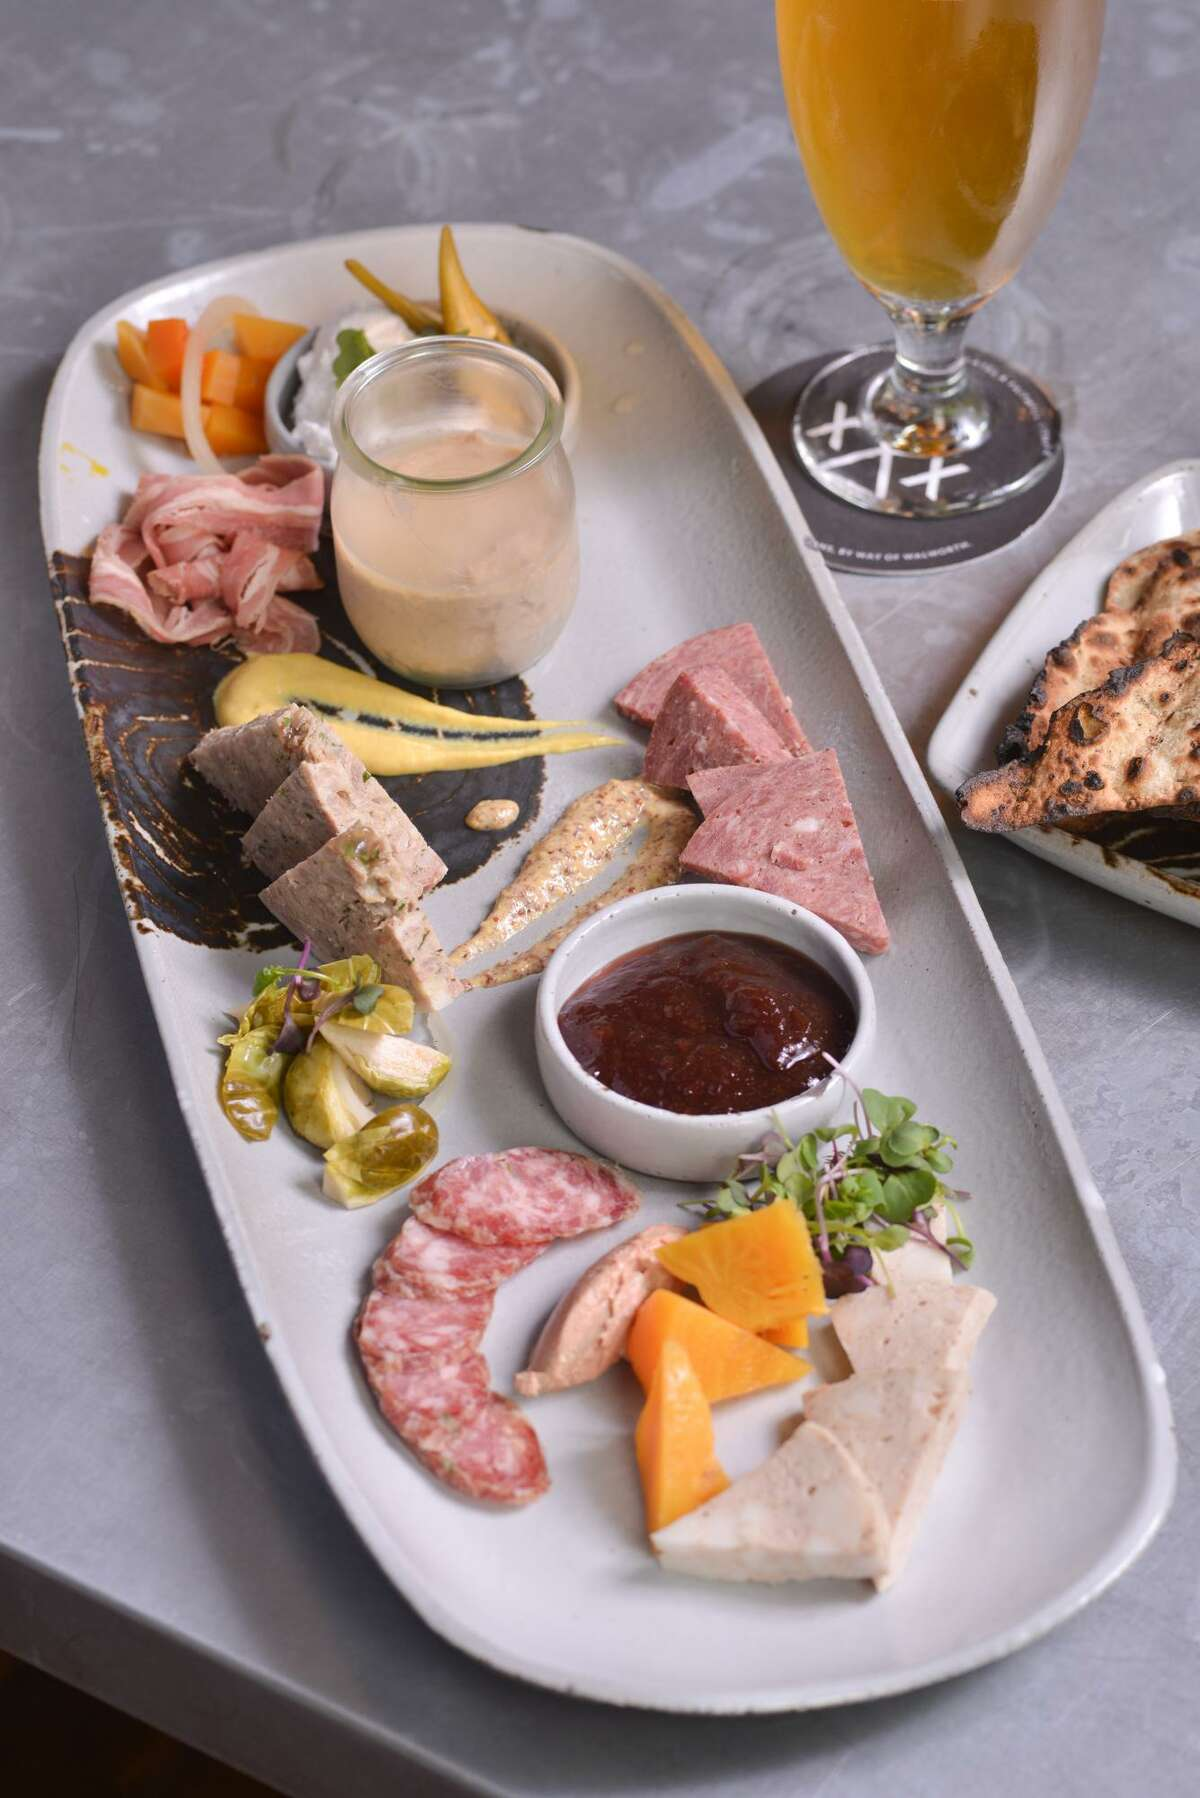 A charcuterie plate from Cured featuring mortadella, chicken liver mousse, jalapeño sauce, apple red wine jam, pickled Brussels sprouts, country style pork paté, smoked veal wurst, smoked lamb belly and whipped pork butter and beer flatbread.